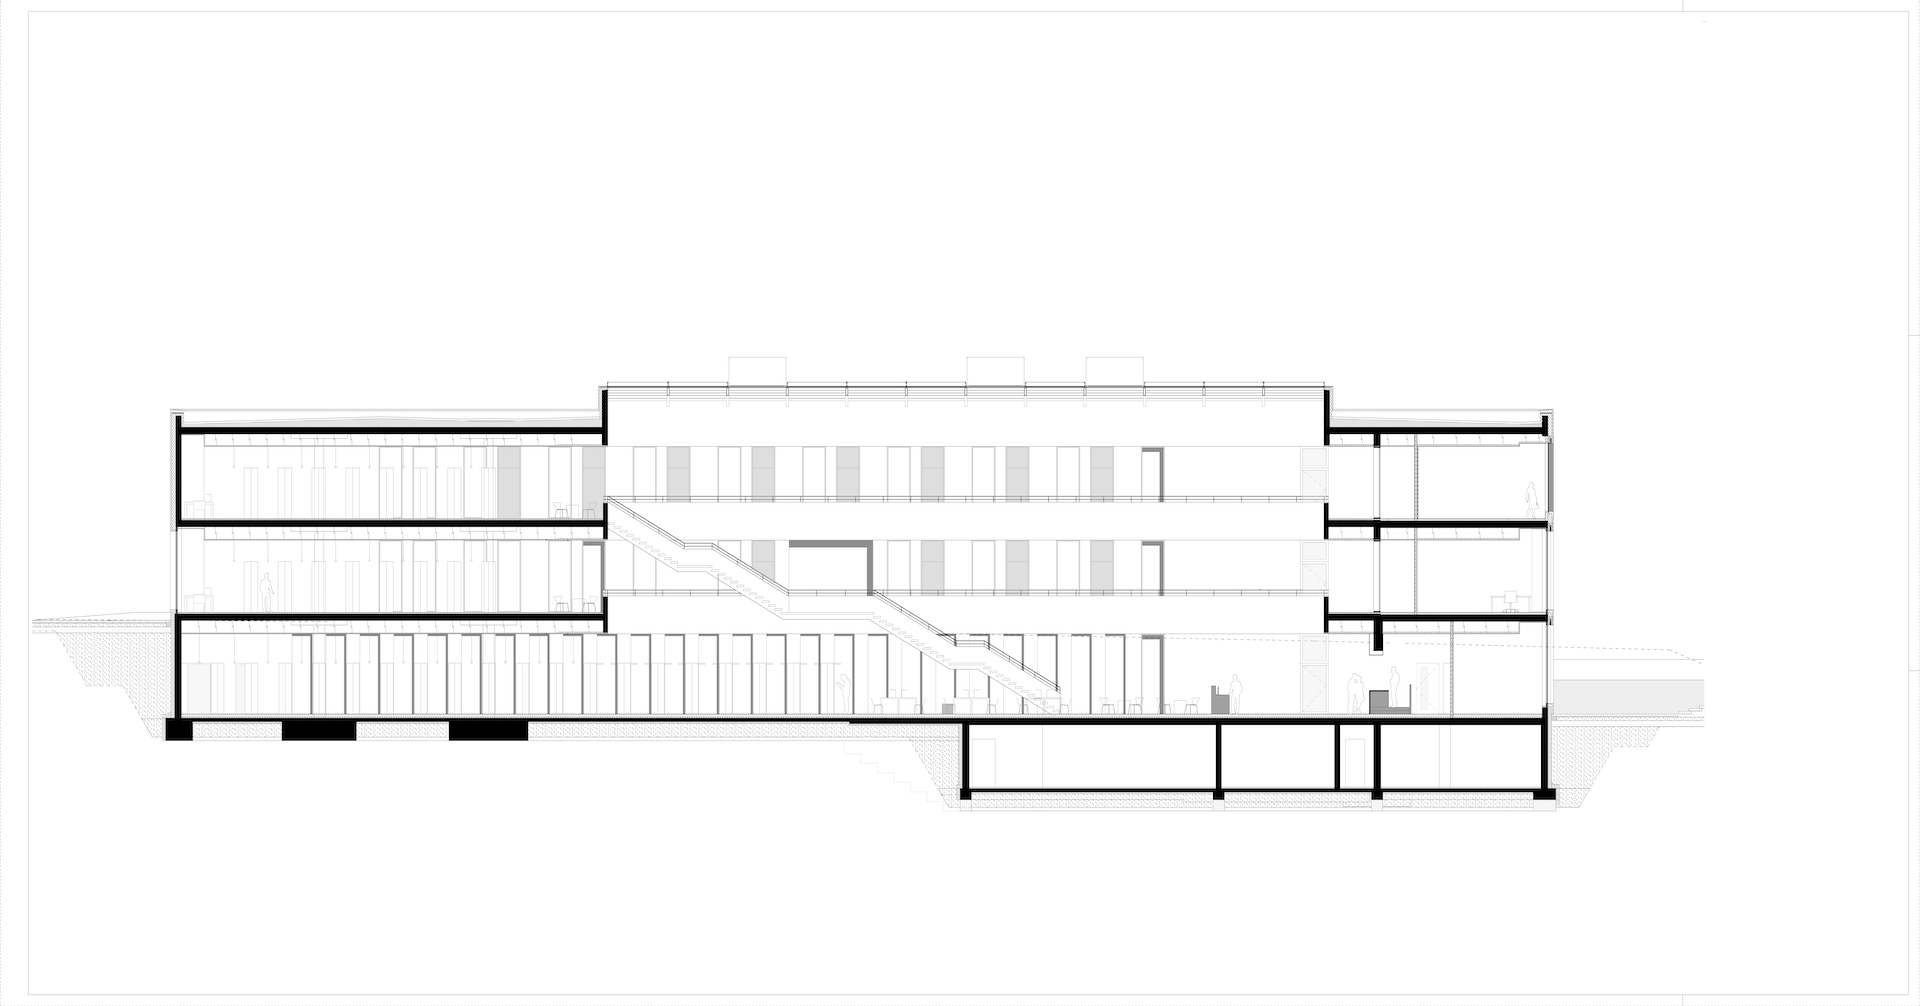 Hochschule Fulda University Applied Sciences library building architecture design plan